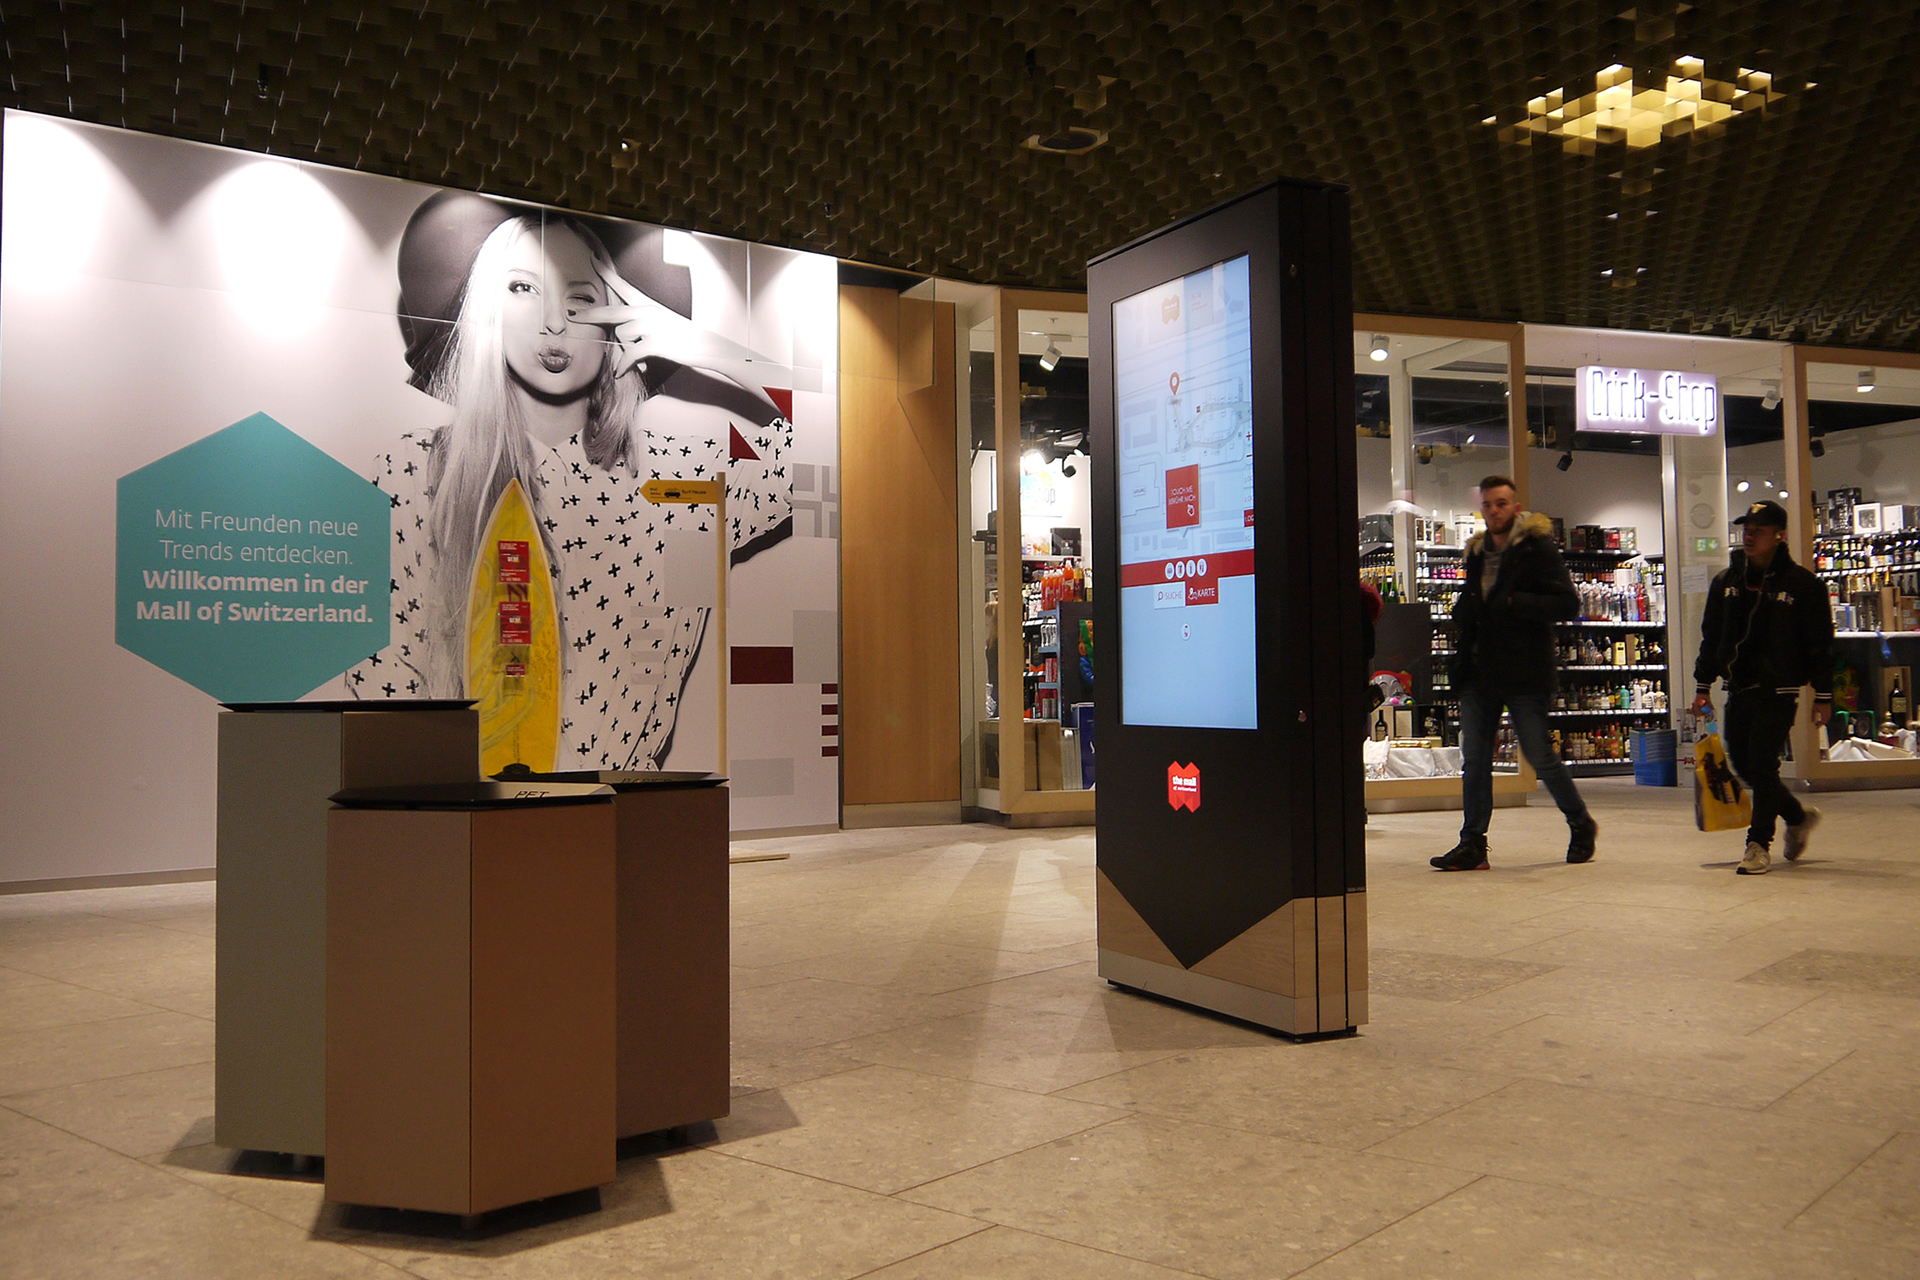 THE MALL OF SWITZERLAND - EBIKON (LUCERNA) - SVIZZERA-image-11